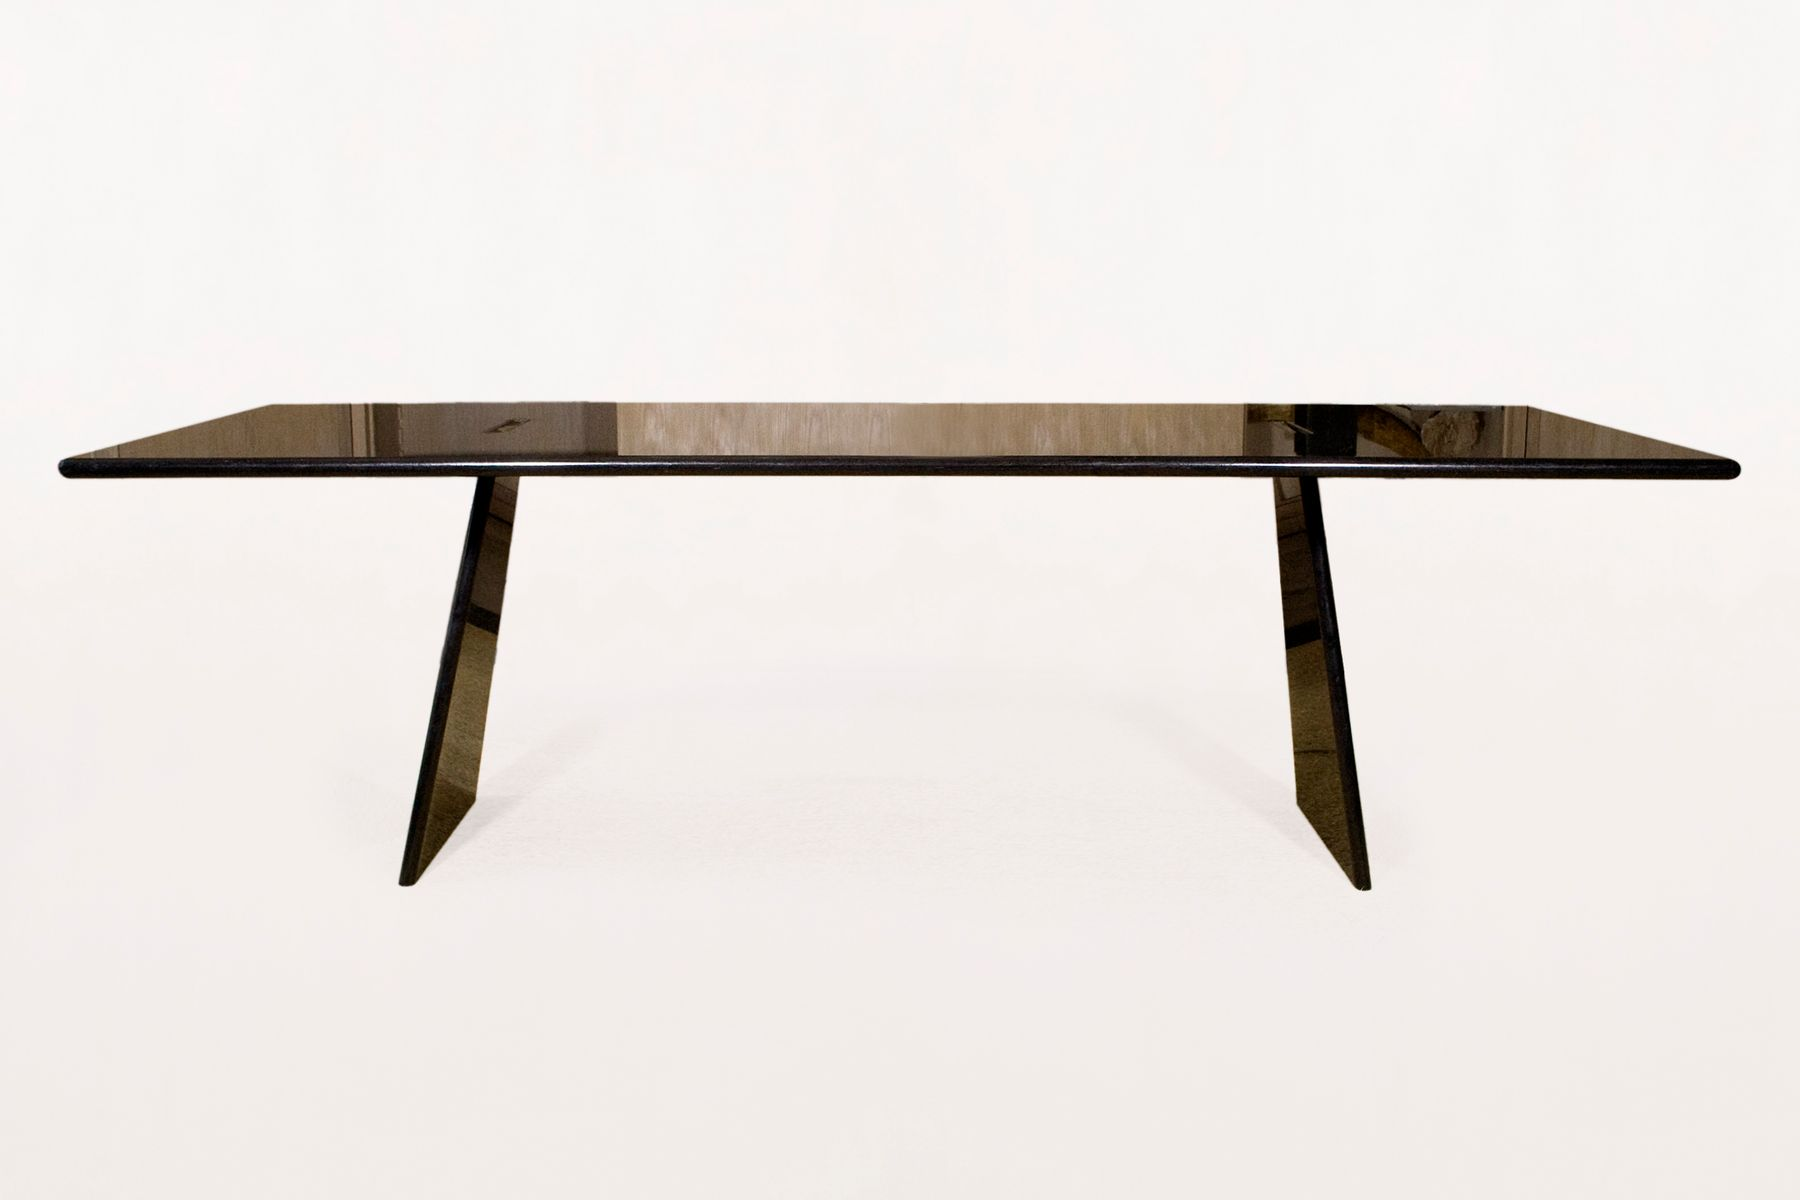 Asolo table in polished black granite by angelo mangiarotti 1990s asolo table in polished black granite by angelo mangiarotti 1990s for sale at pamono geotapseo Image collections